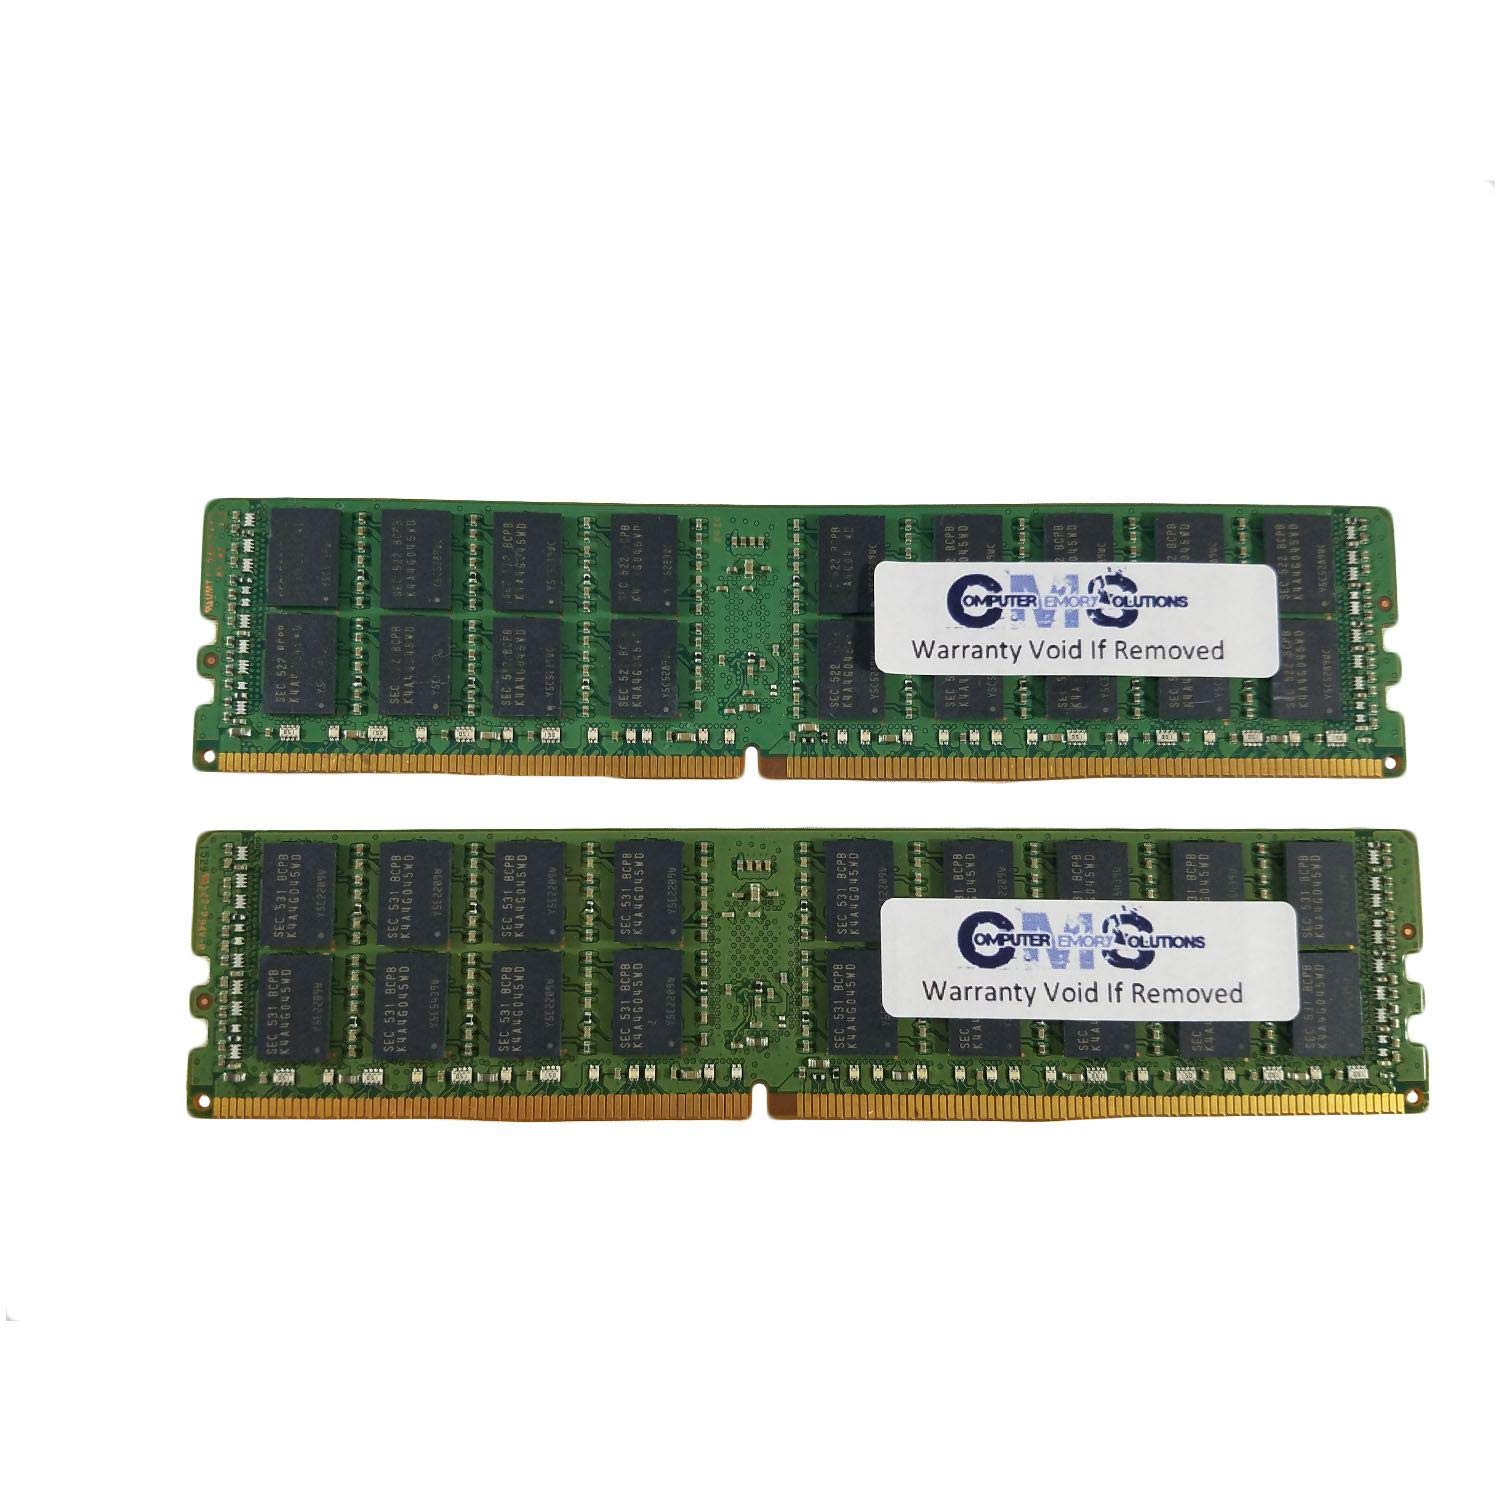 Memory RAM Upgrade for The Dell Poweredge R630 Server Memory 32GB DDR4-2133 PC4-17000